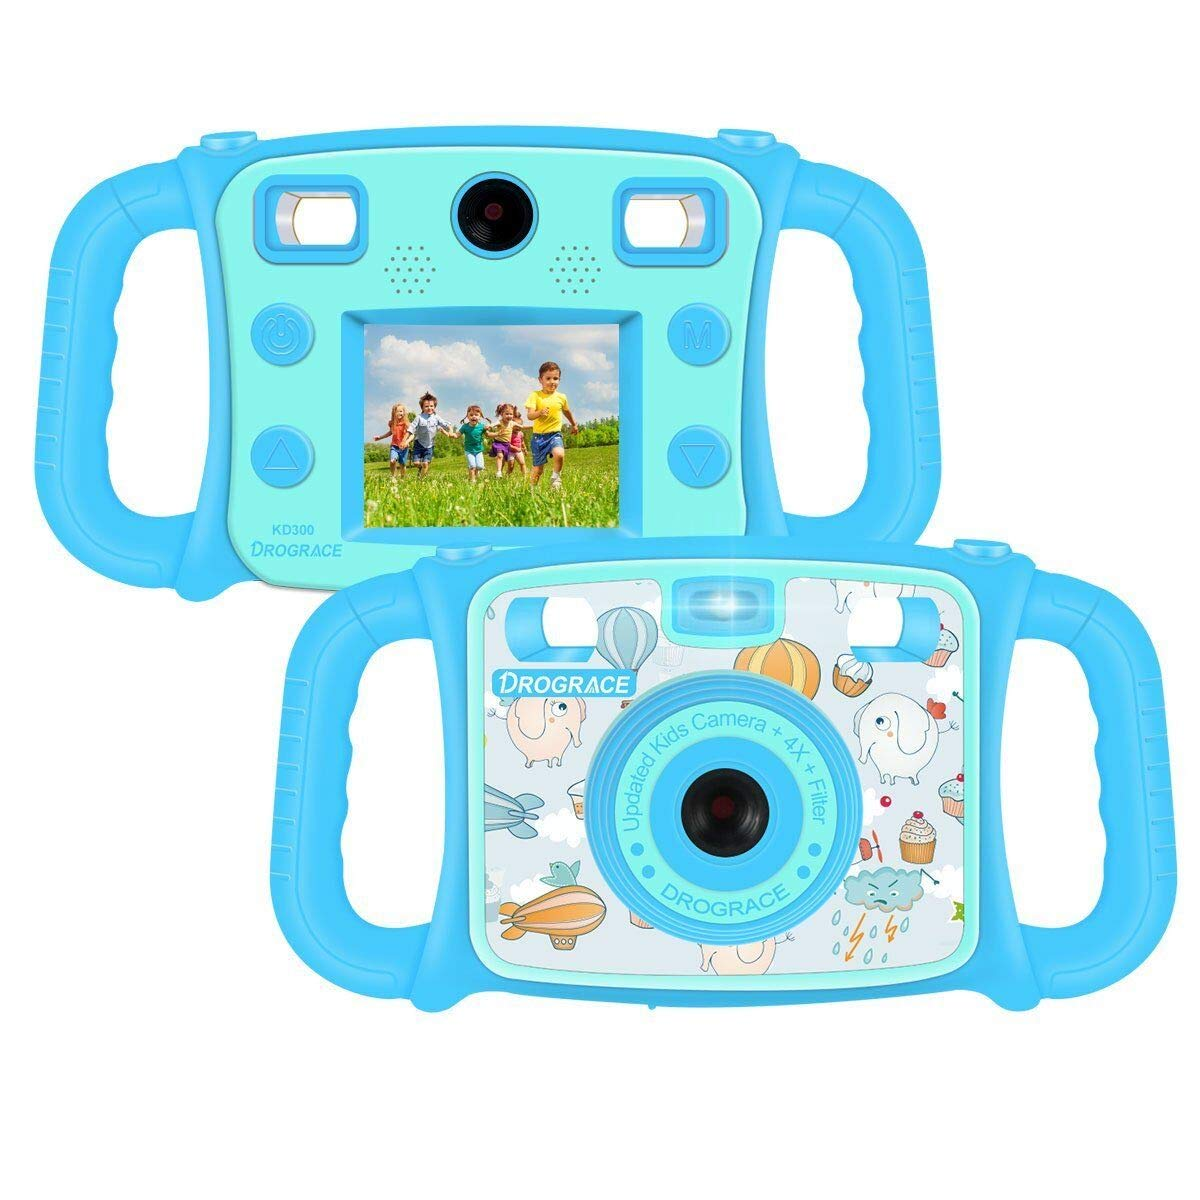 DROGRACE Kids Camera 1080P HD Kids Digital Video Camera Selfie Camera Sports Cam for Boys Birthday Holiday Gift Children Camera with 2 inch LCD Screen – Blue